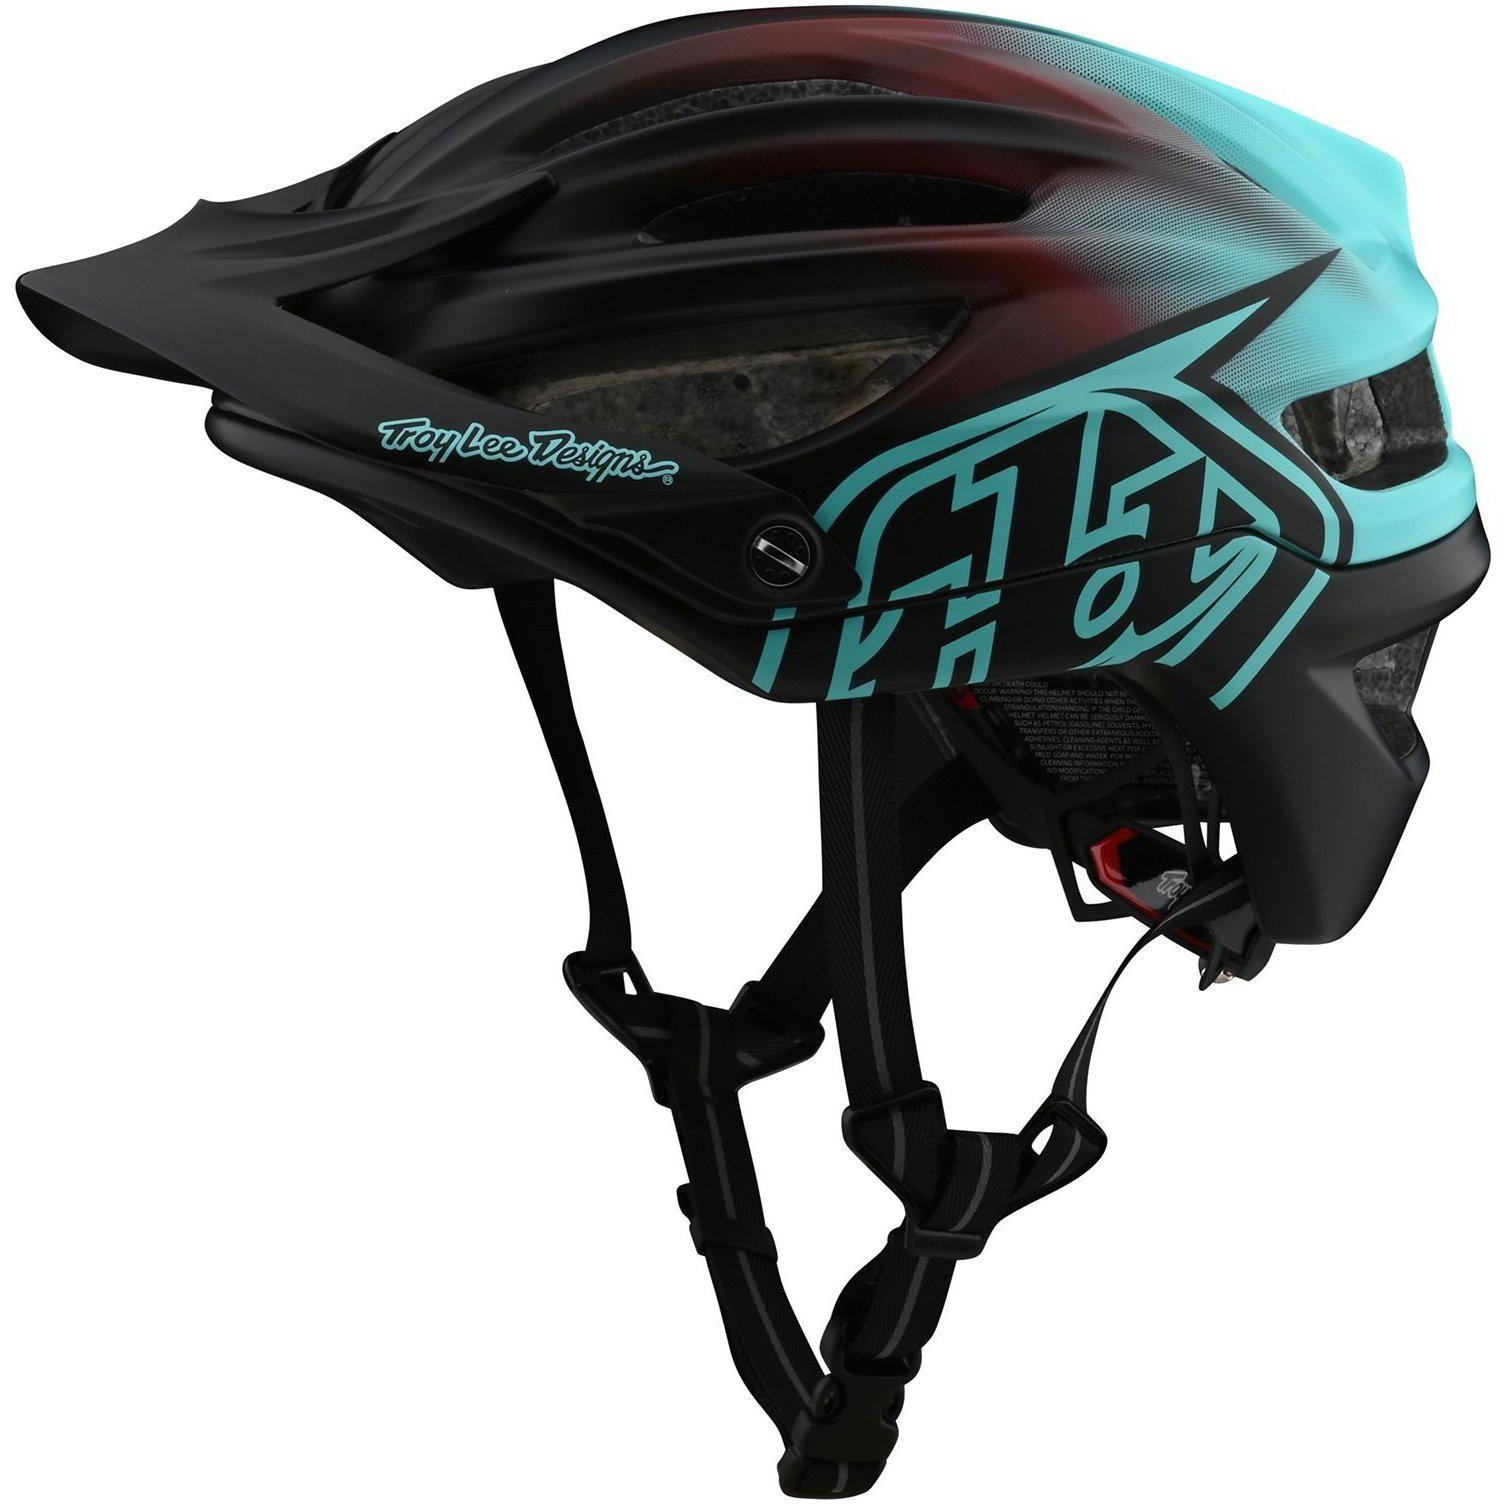 Troy Lee Designs-Troy Lee Designs A2 MIPS Helmet-Stain'D - Black/Turquoise-M/L-TLD191783013-saddleback-elite-performance-cycling